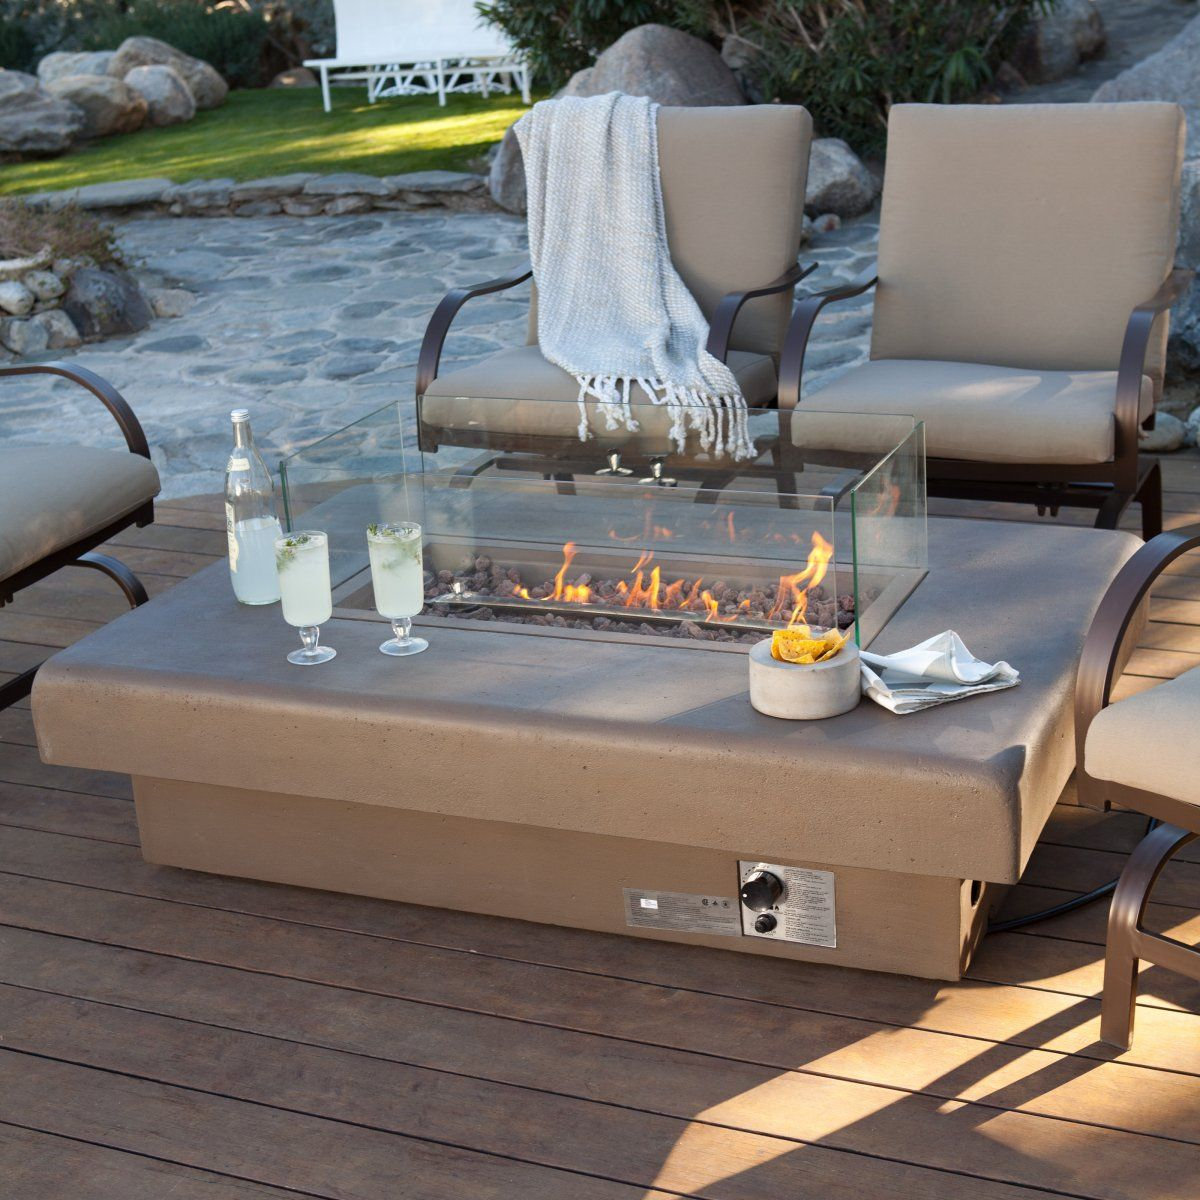 Set Rectangular Gas Fire Pit Outdoor Completed With Glass Cover